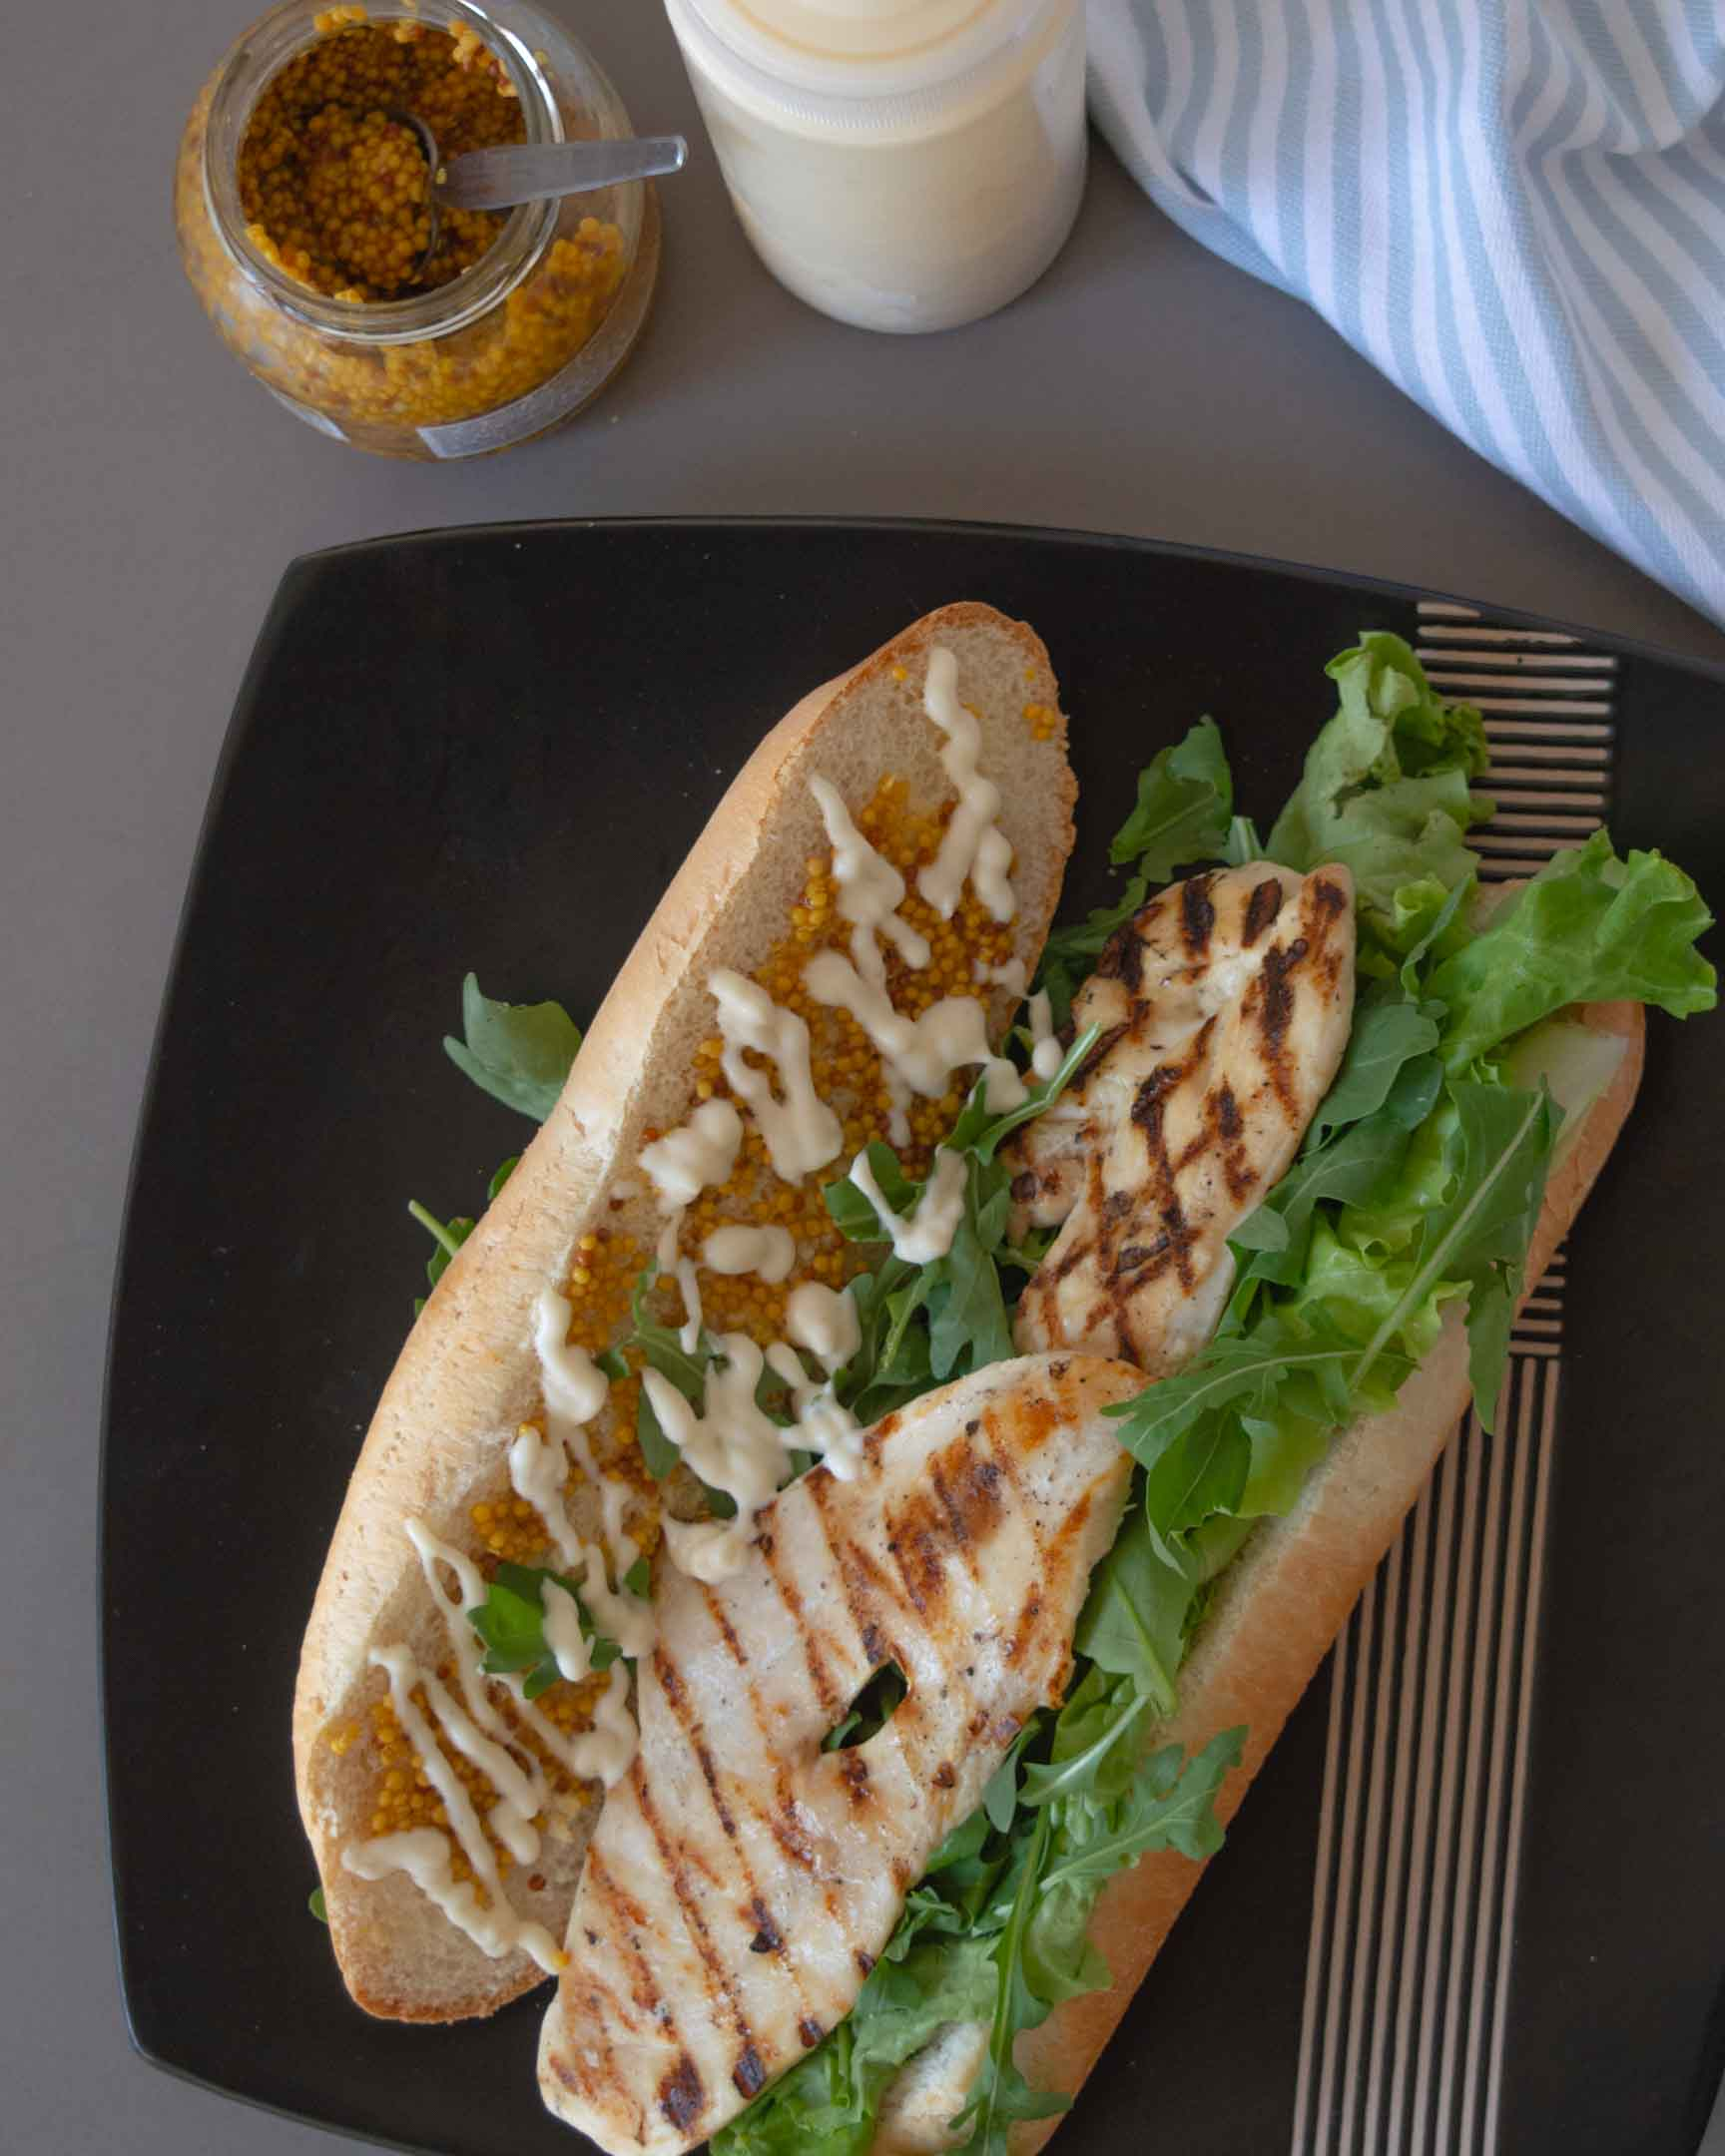 grilled chicken sandwich on a plate, from above